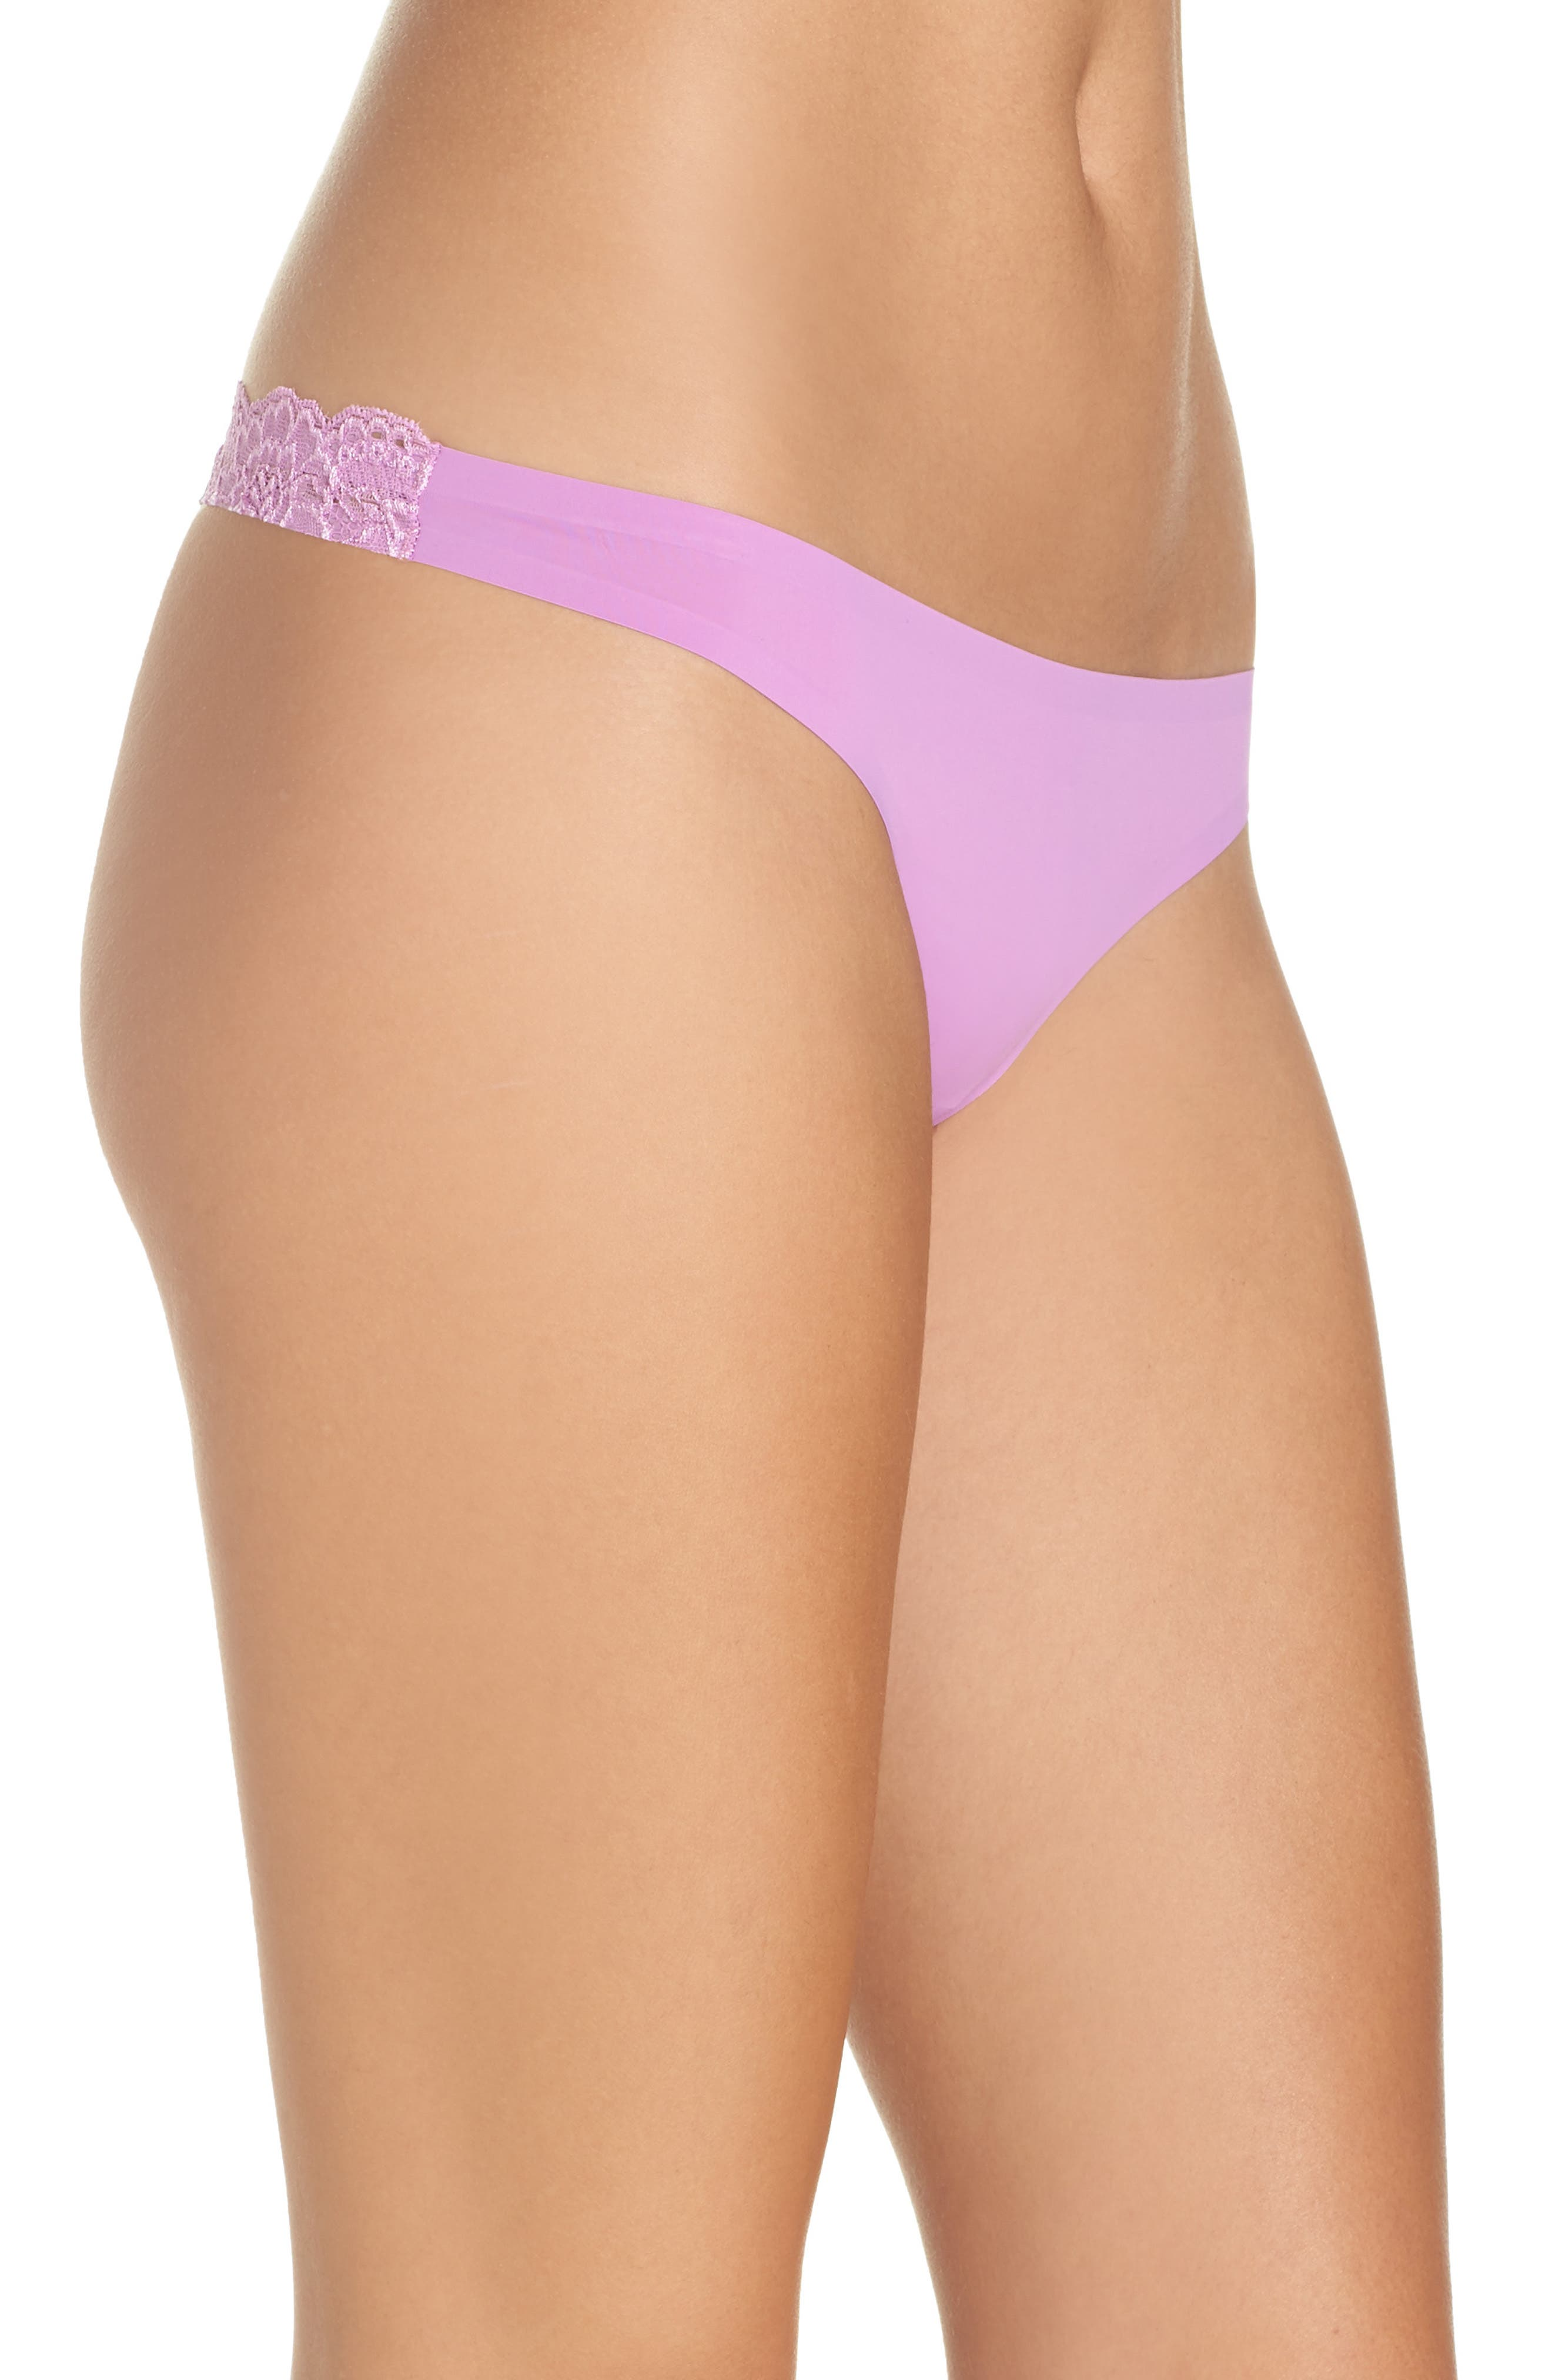 Intimately FP Smooth Thong,                             Alternate thumbnail 22, color,